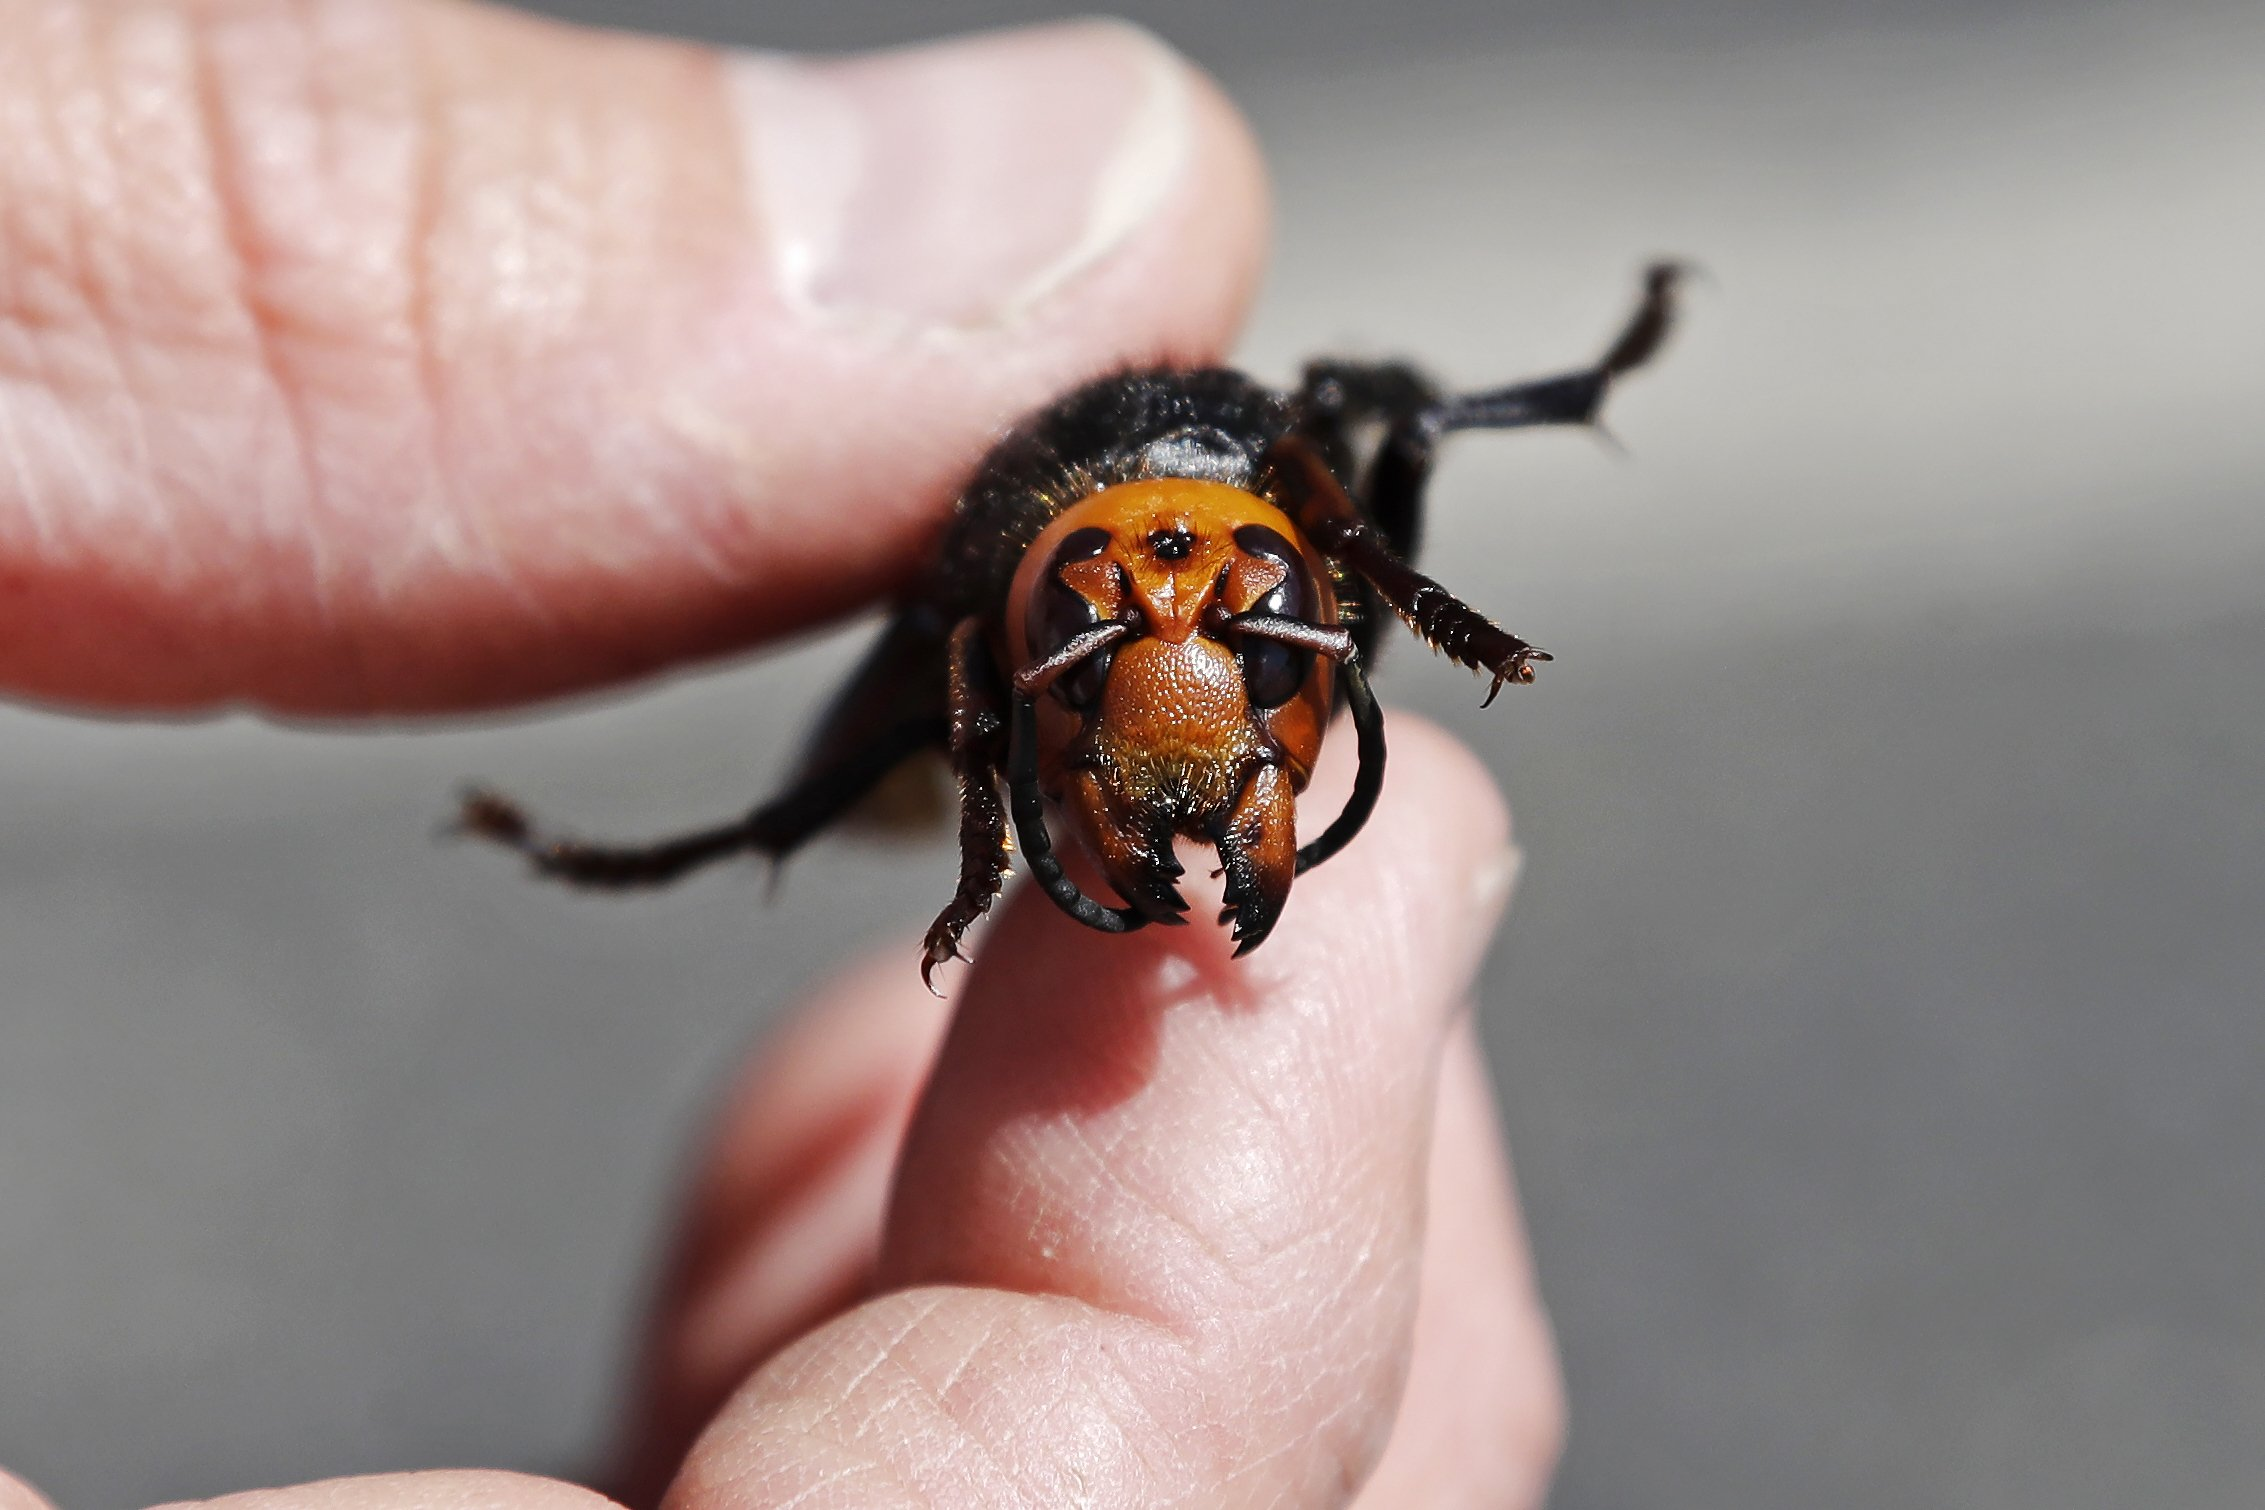 Another Asian giant hornet found in northwestern Washington